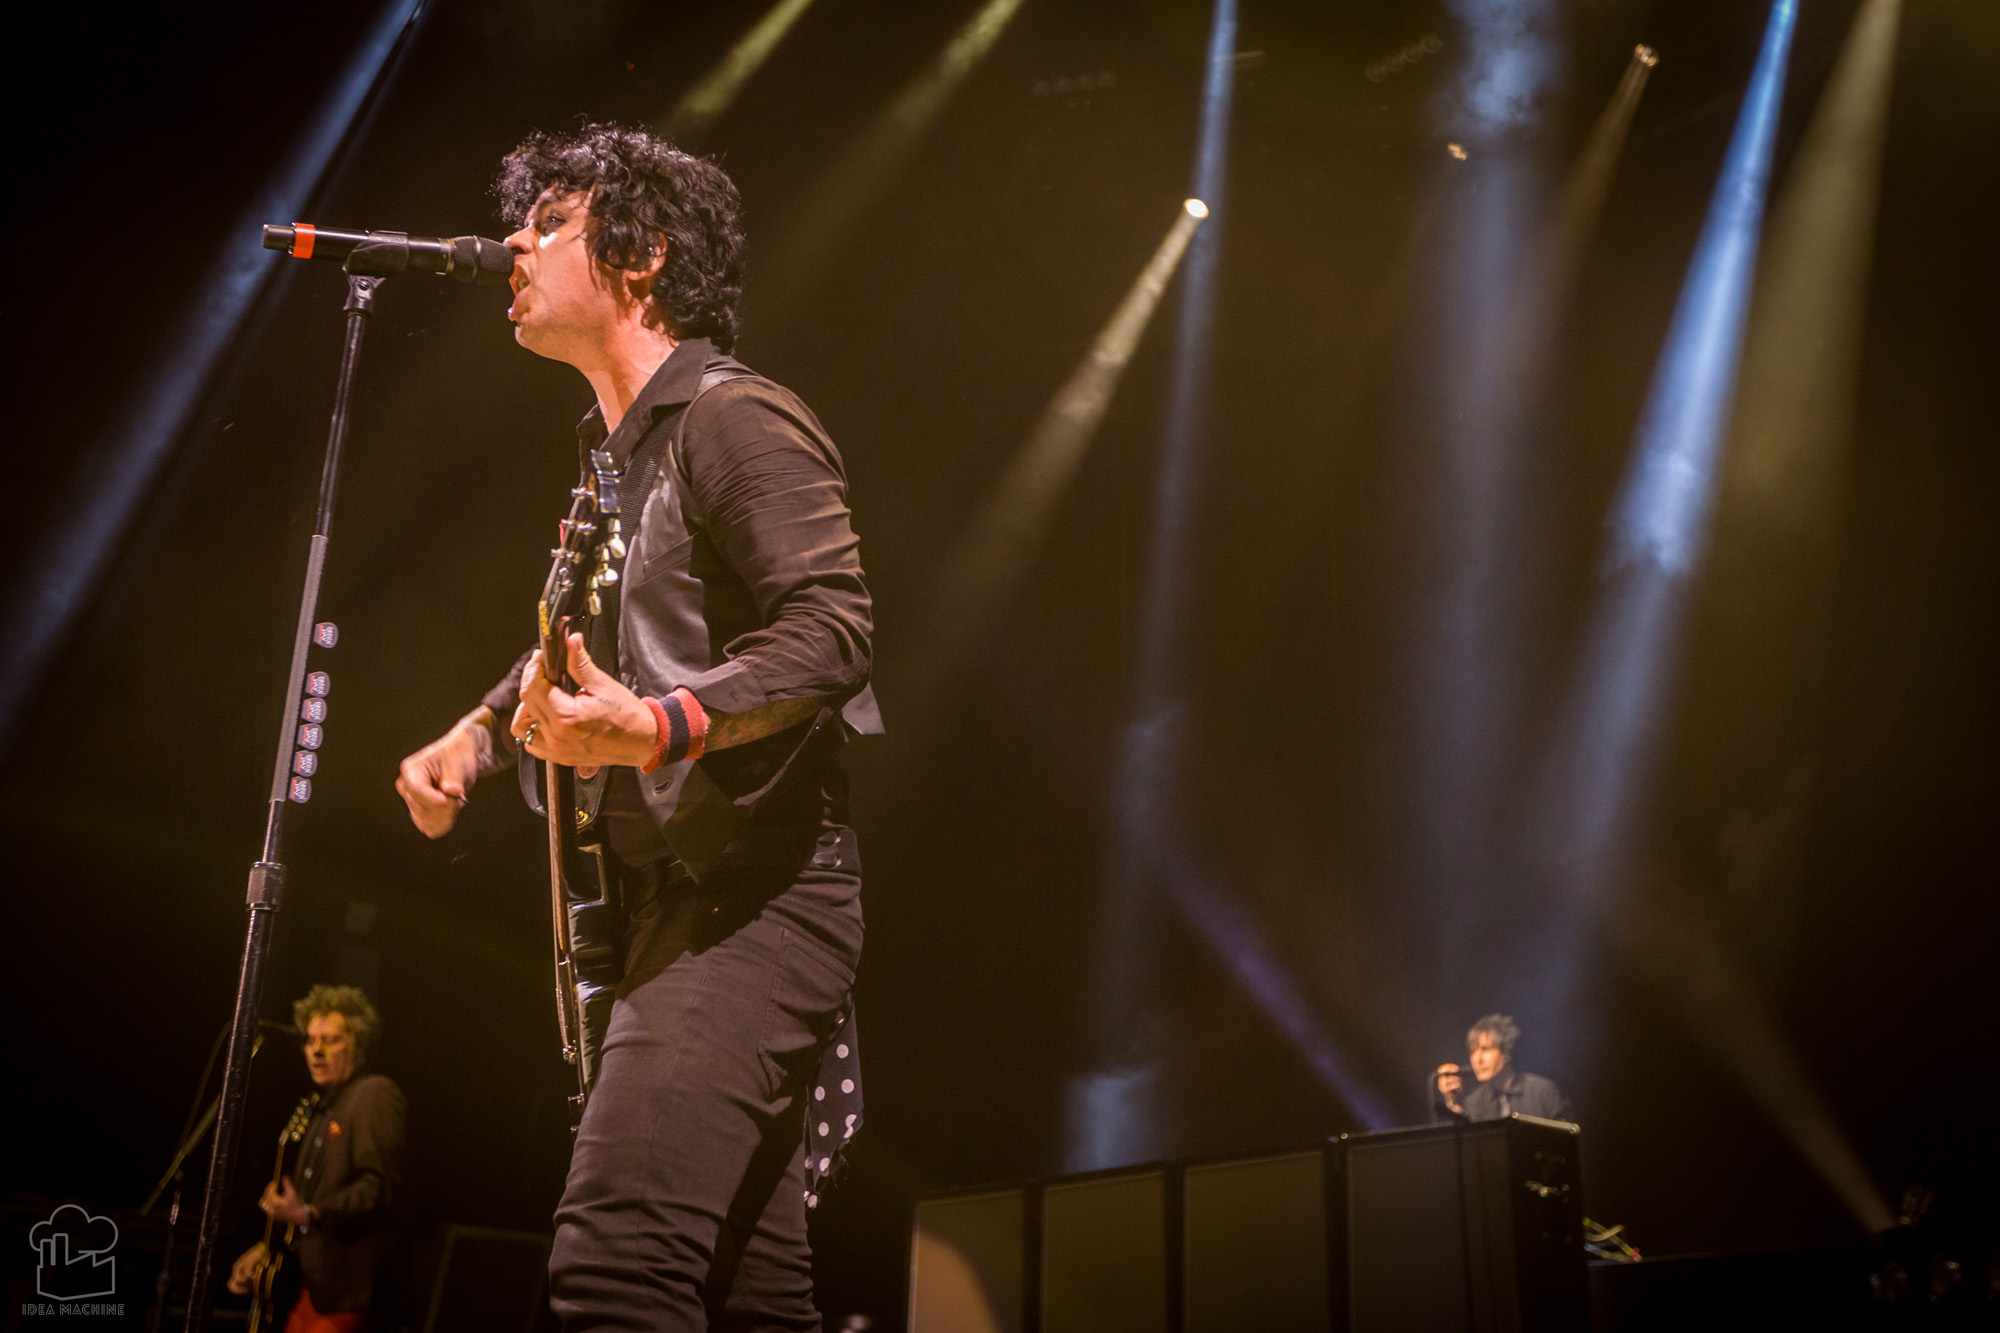 Billie Joe Armstrong of Green Day plays in St. Louis during the Revolution Radio Tour on Monday, August 14, 2017.